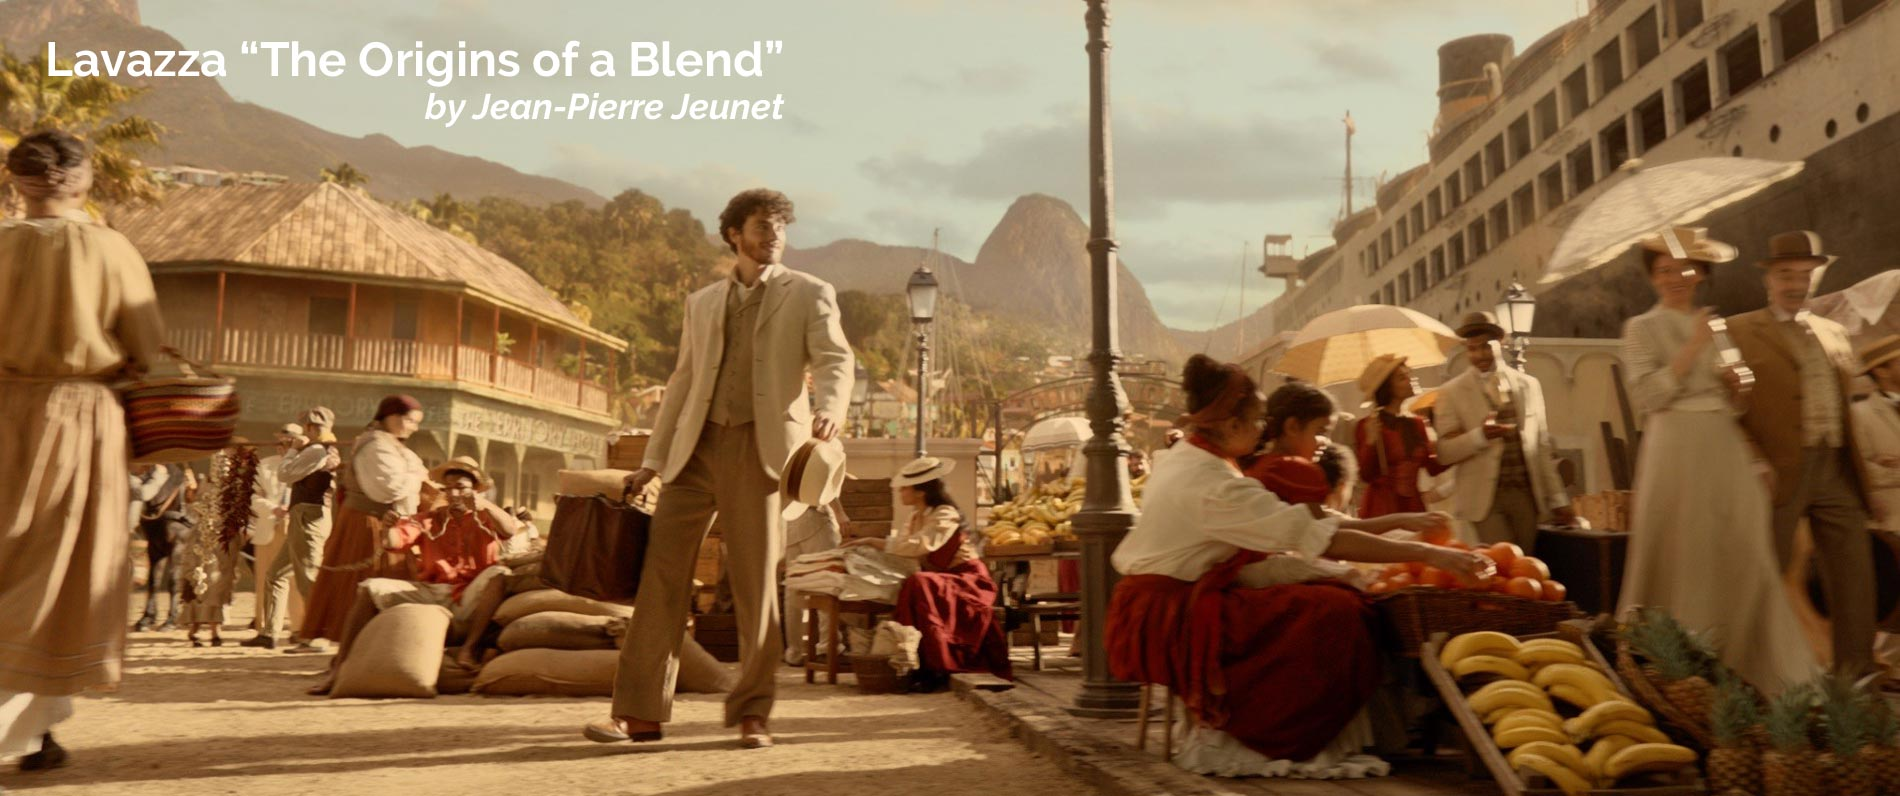 Lavazza - The Origins of a Blend